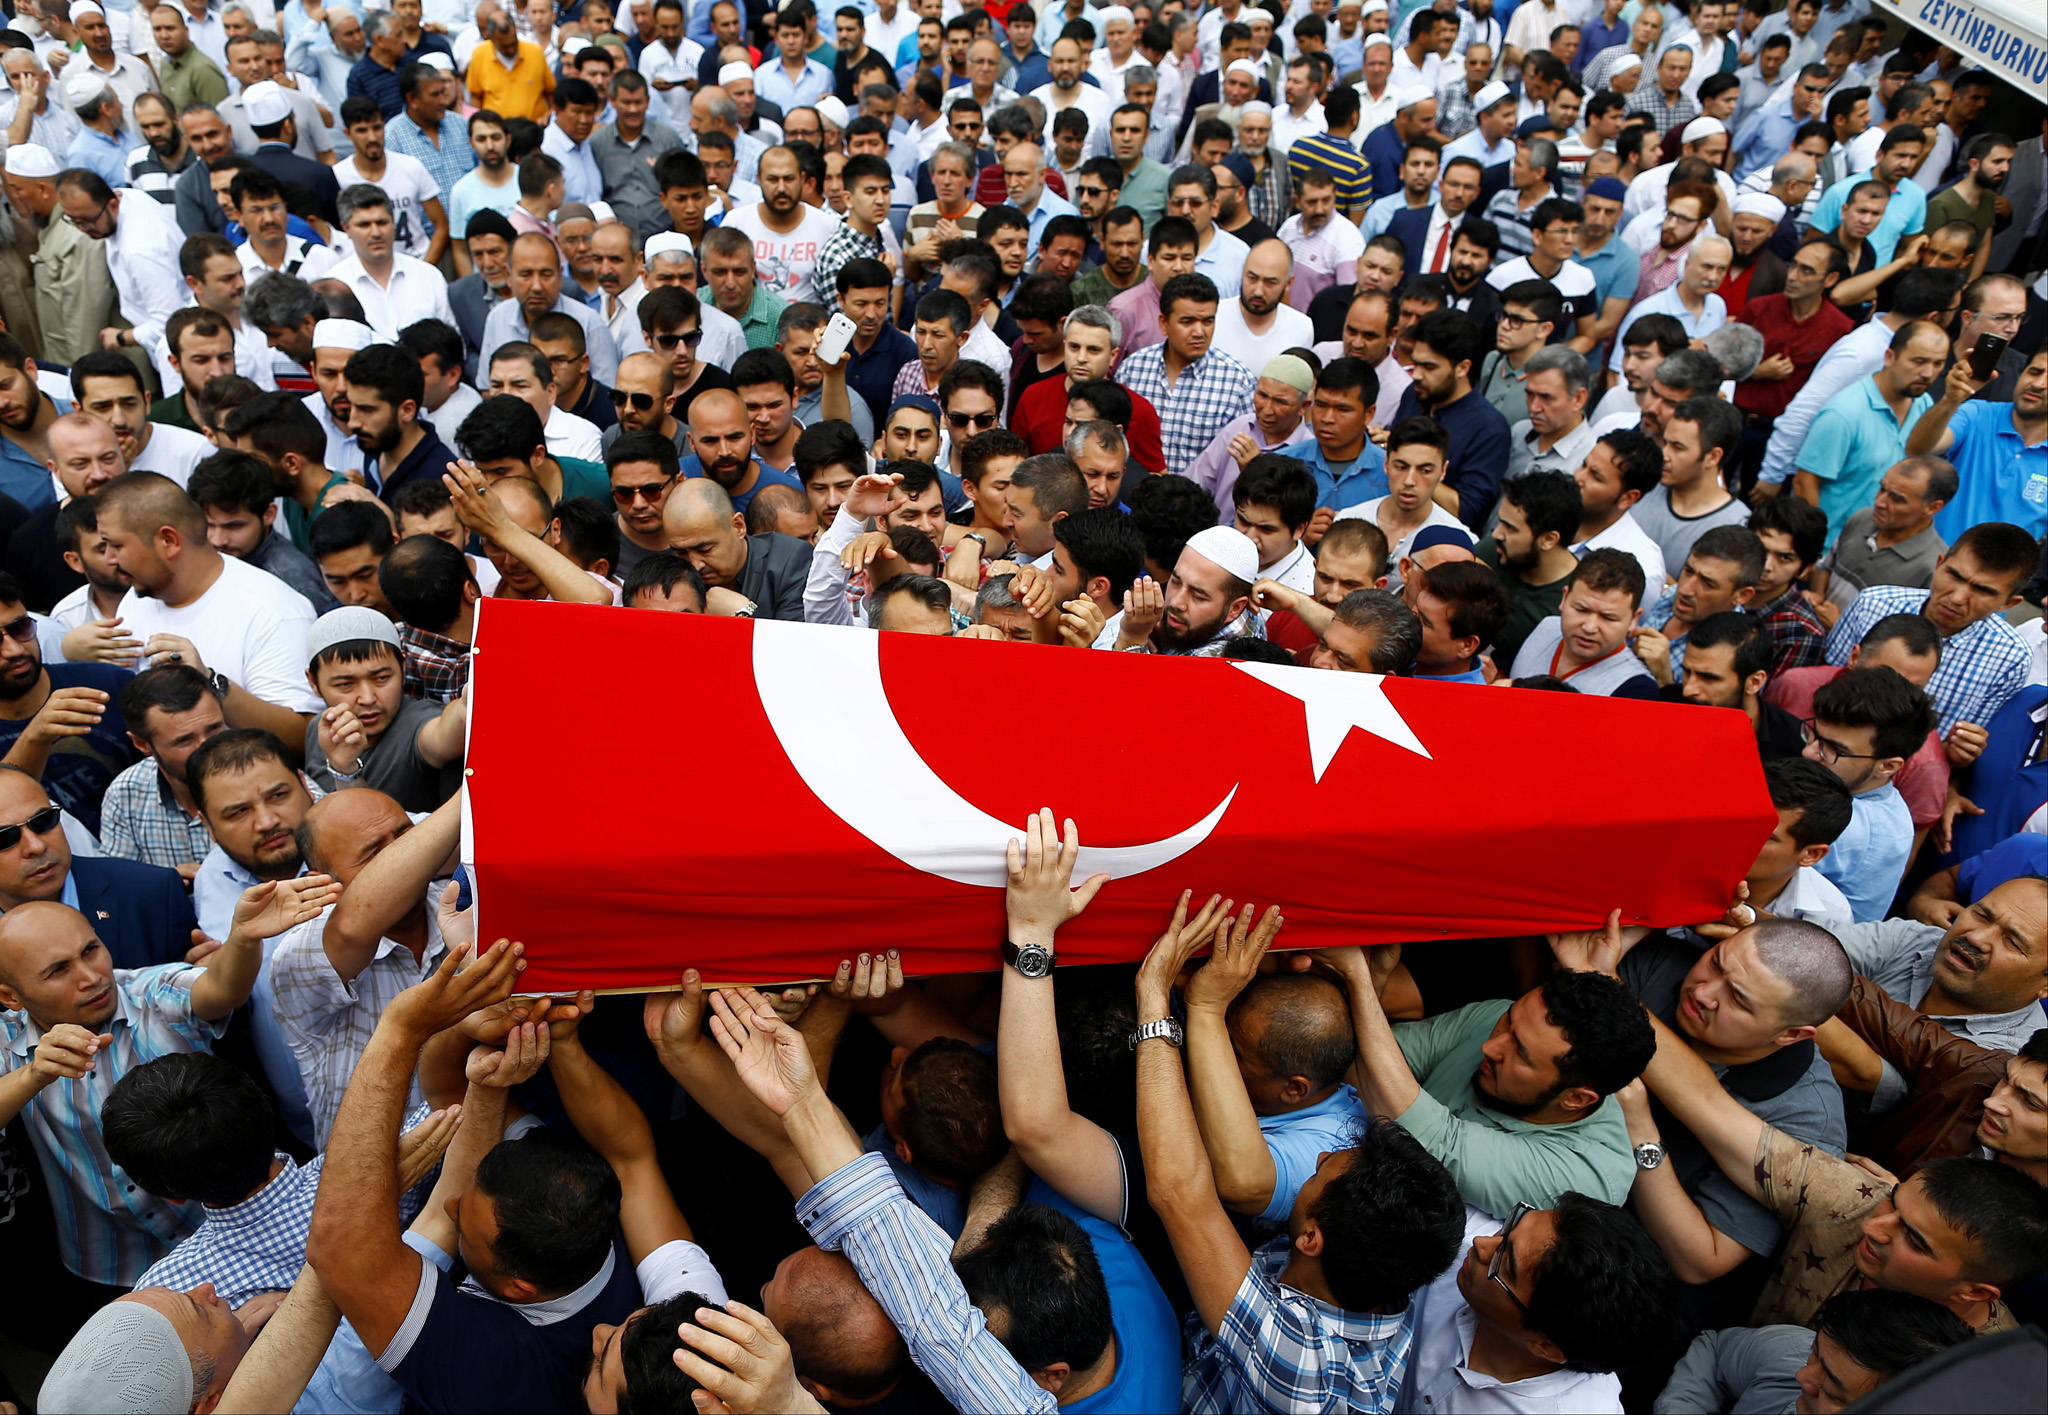 Friends and relatives of Habibullah Sefer, who was killed in Tuesday's attack at Istanbul airport, carry his flag-draped coffin during his funeral ceremony in Istanbul, Turkey